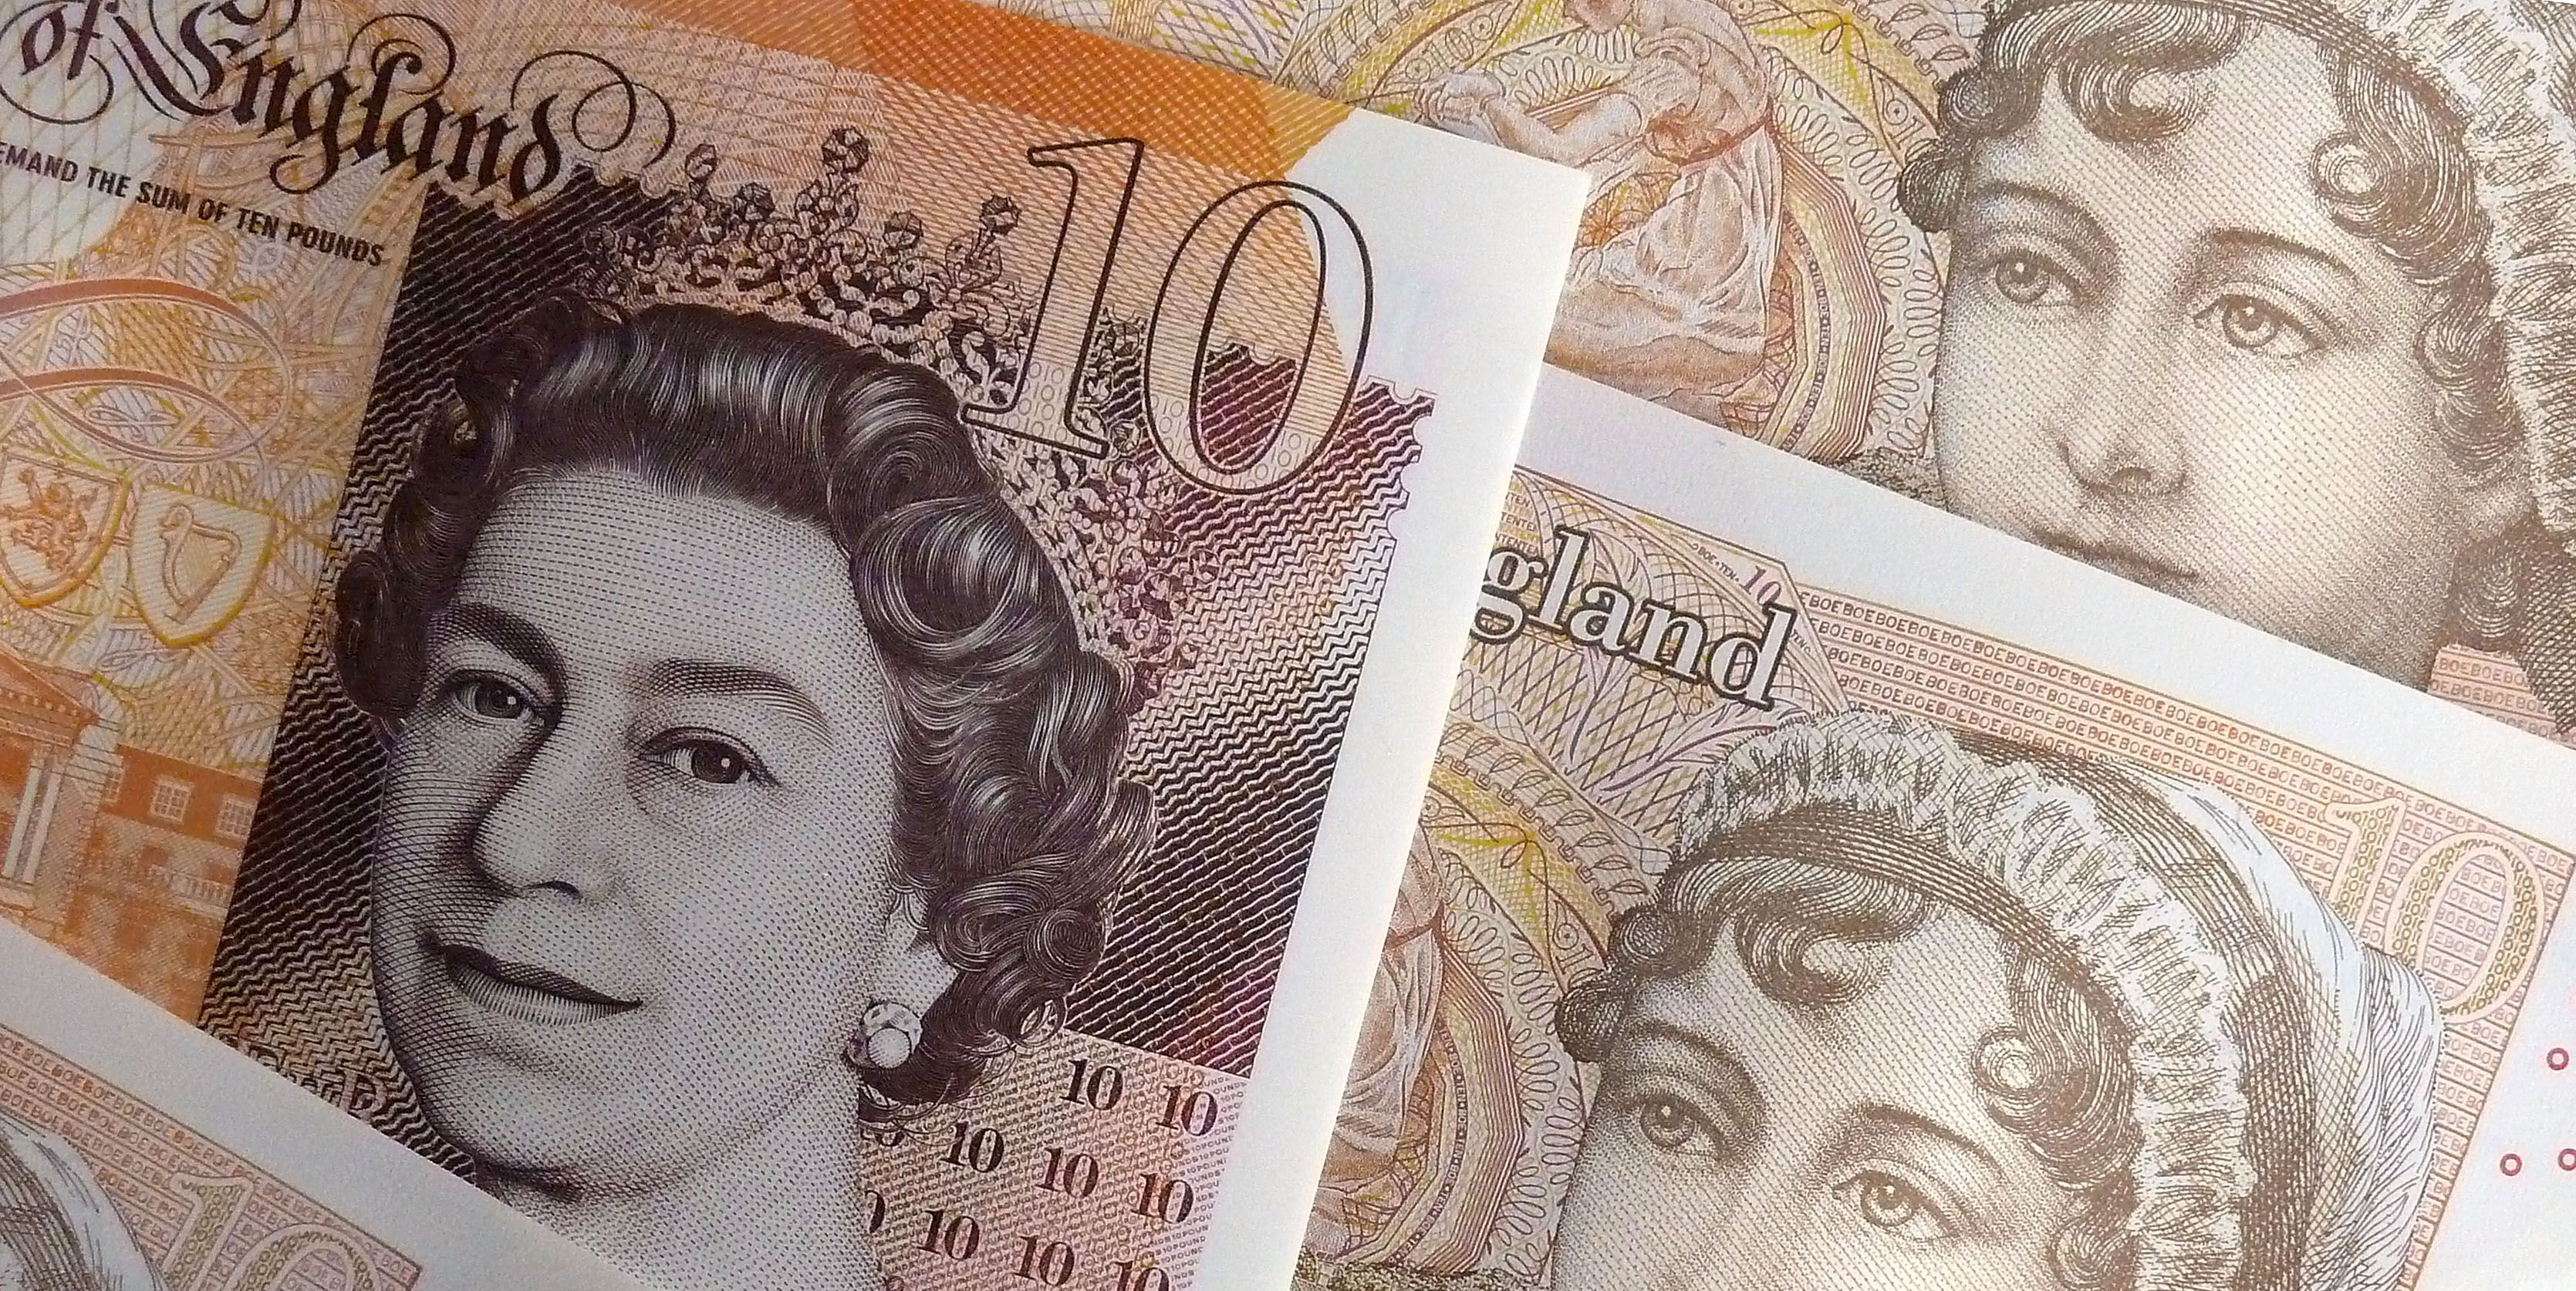 Today is the last day you can spend your old £10 notes